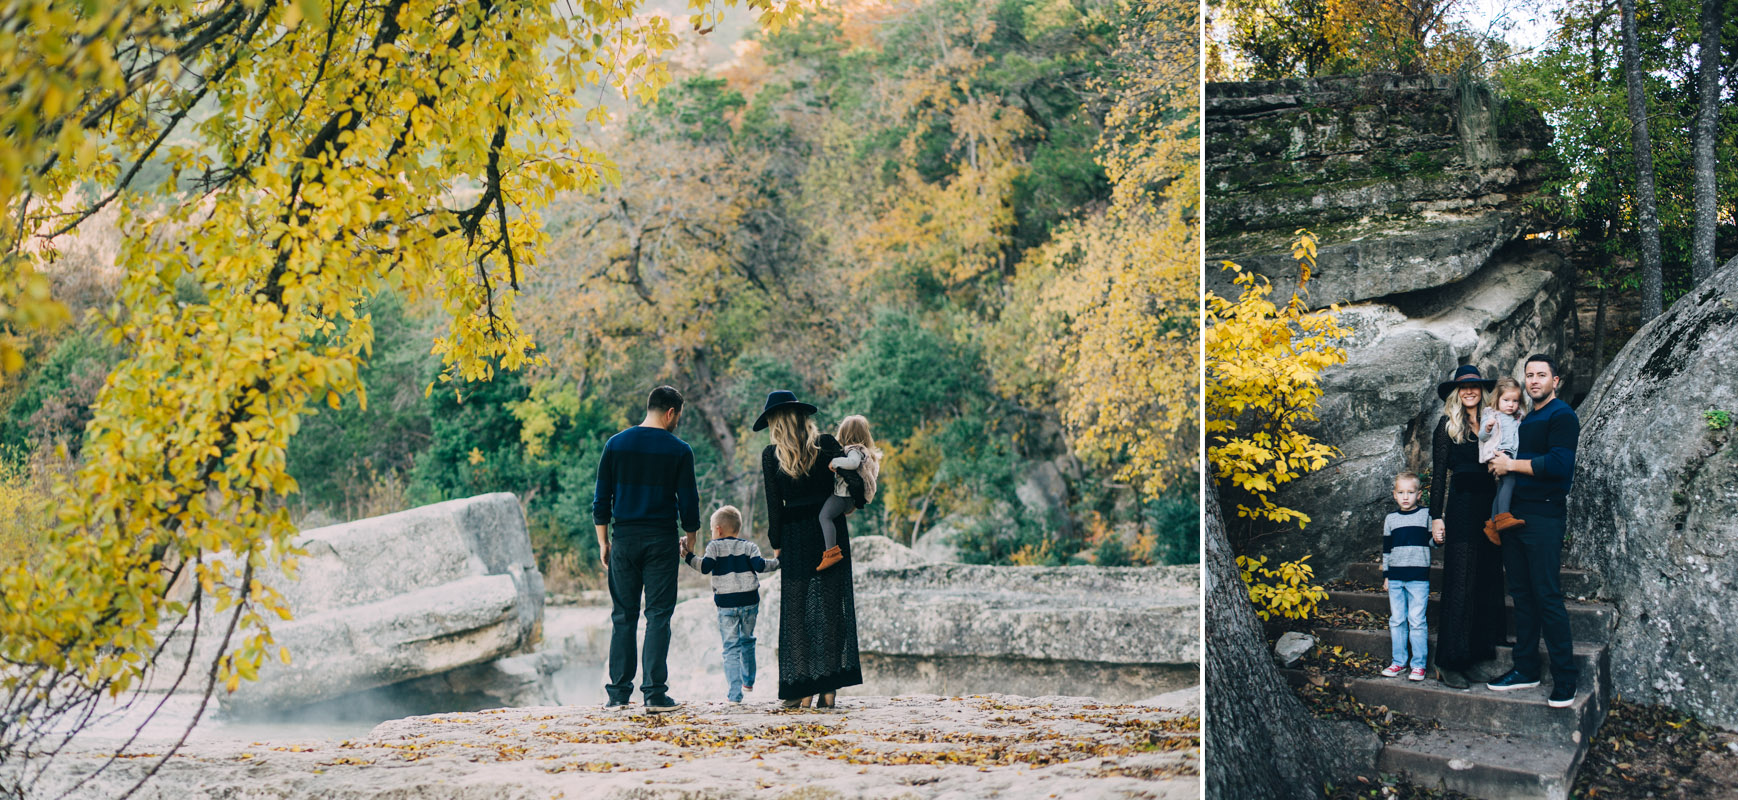 Fall Family Portraits | Bull Creek Austin Texas | Lisa Woods Photography